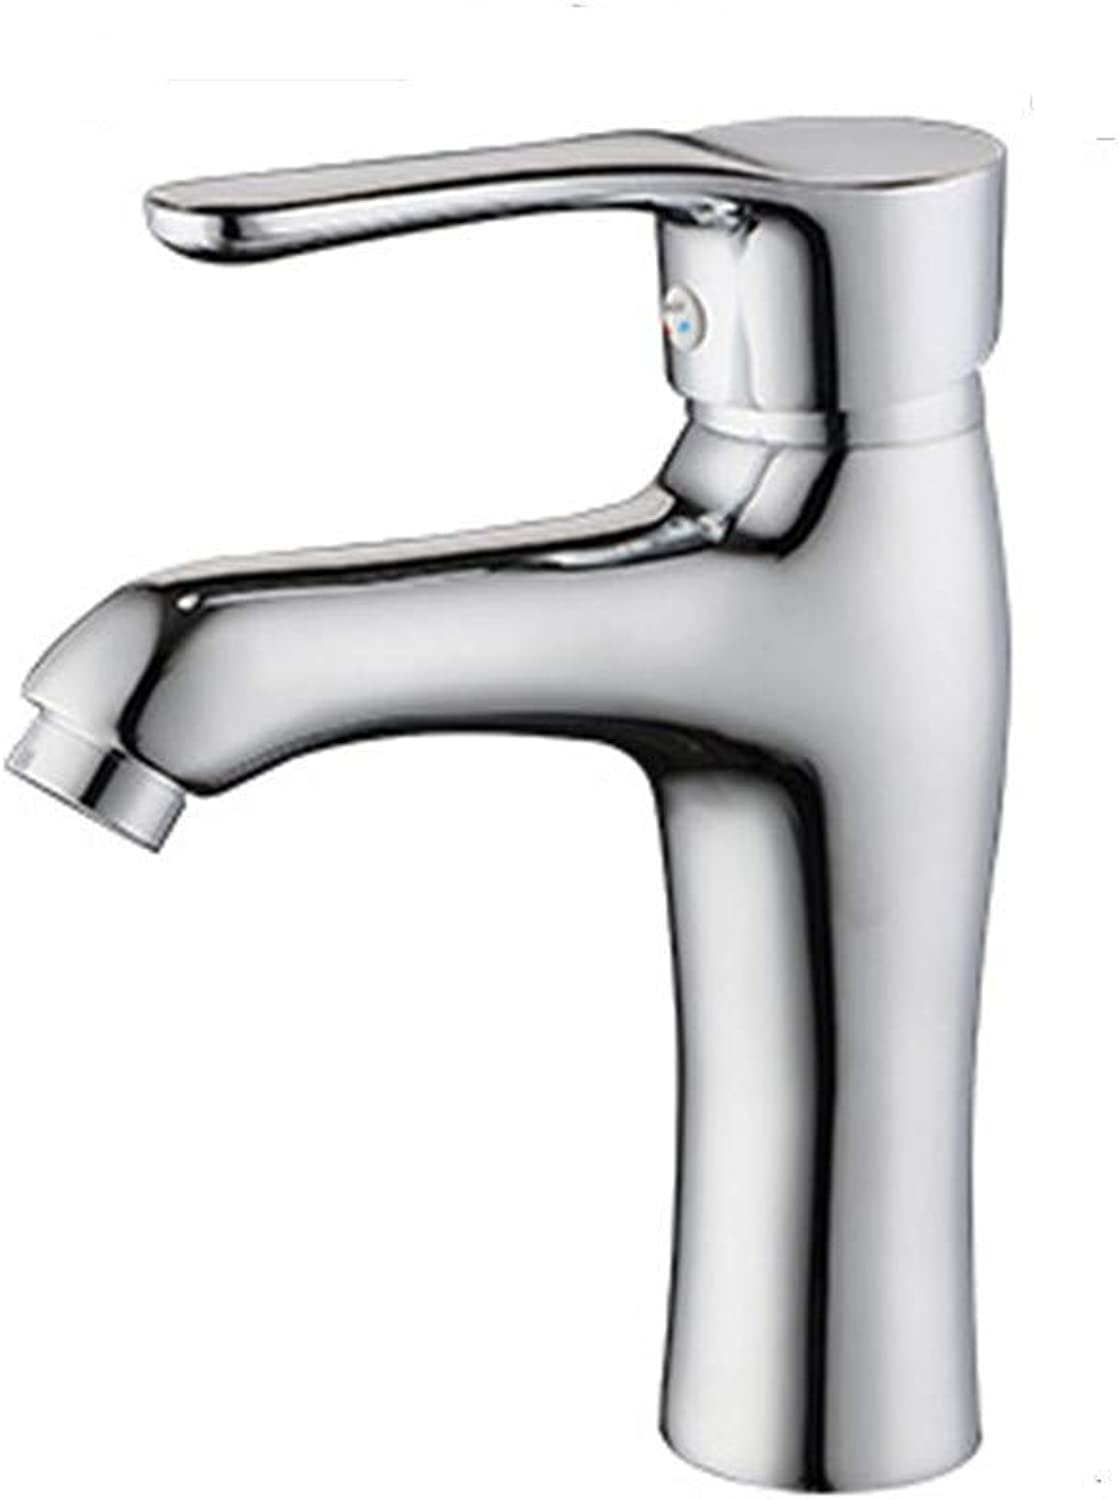 Chrome-Plated Brass Faucet Hot and Cold Washbasin Faucet Copper Body Above Counter Basin Faucet Single Hole Faucet